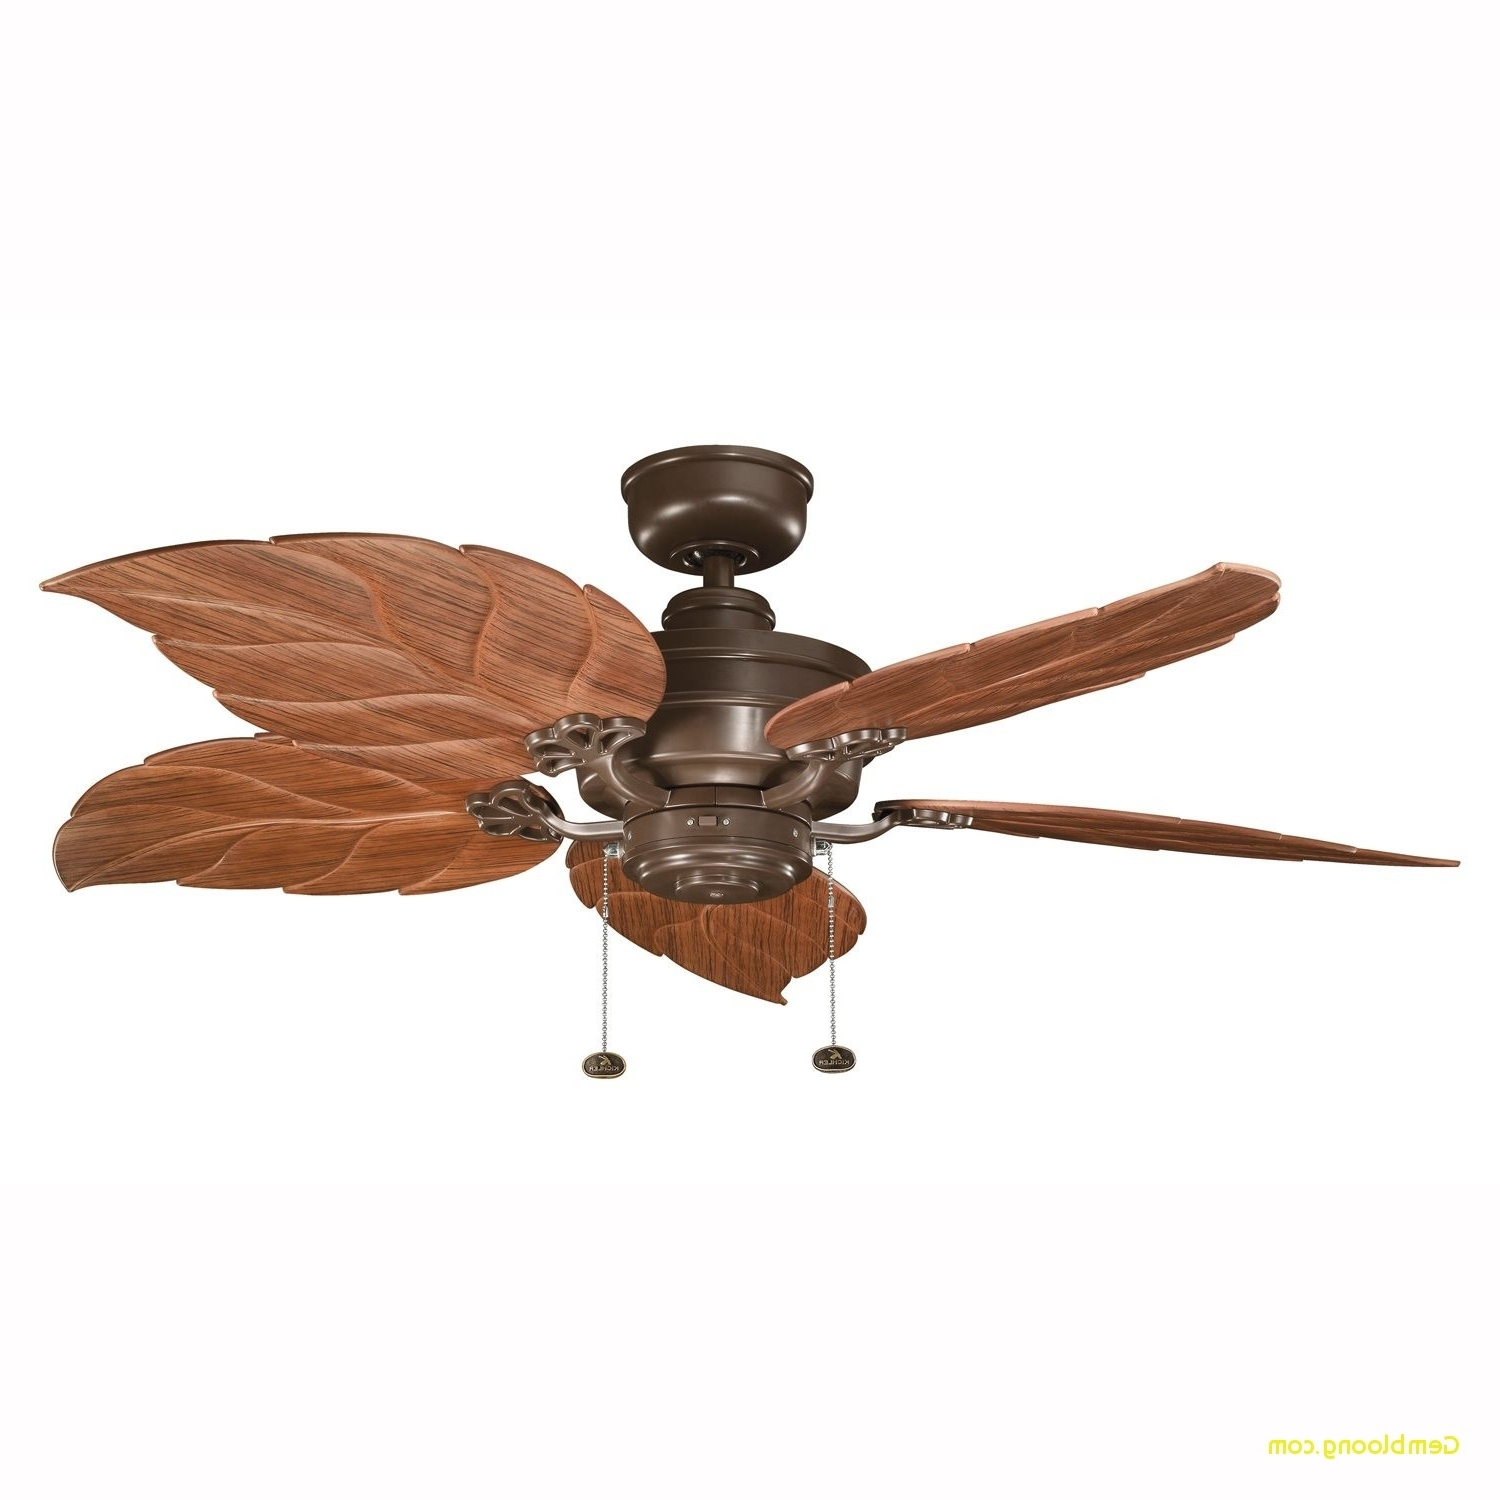 Bossconseil Pertaining To Outdoor Ceiling Fan With Bluetooth Speaker (View 3 of 20)